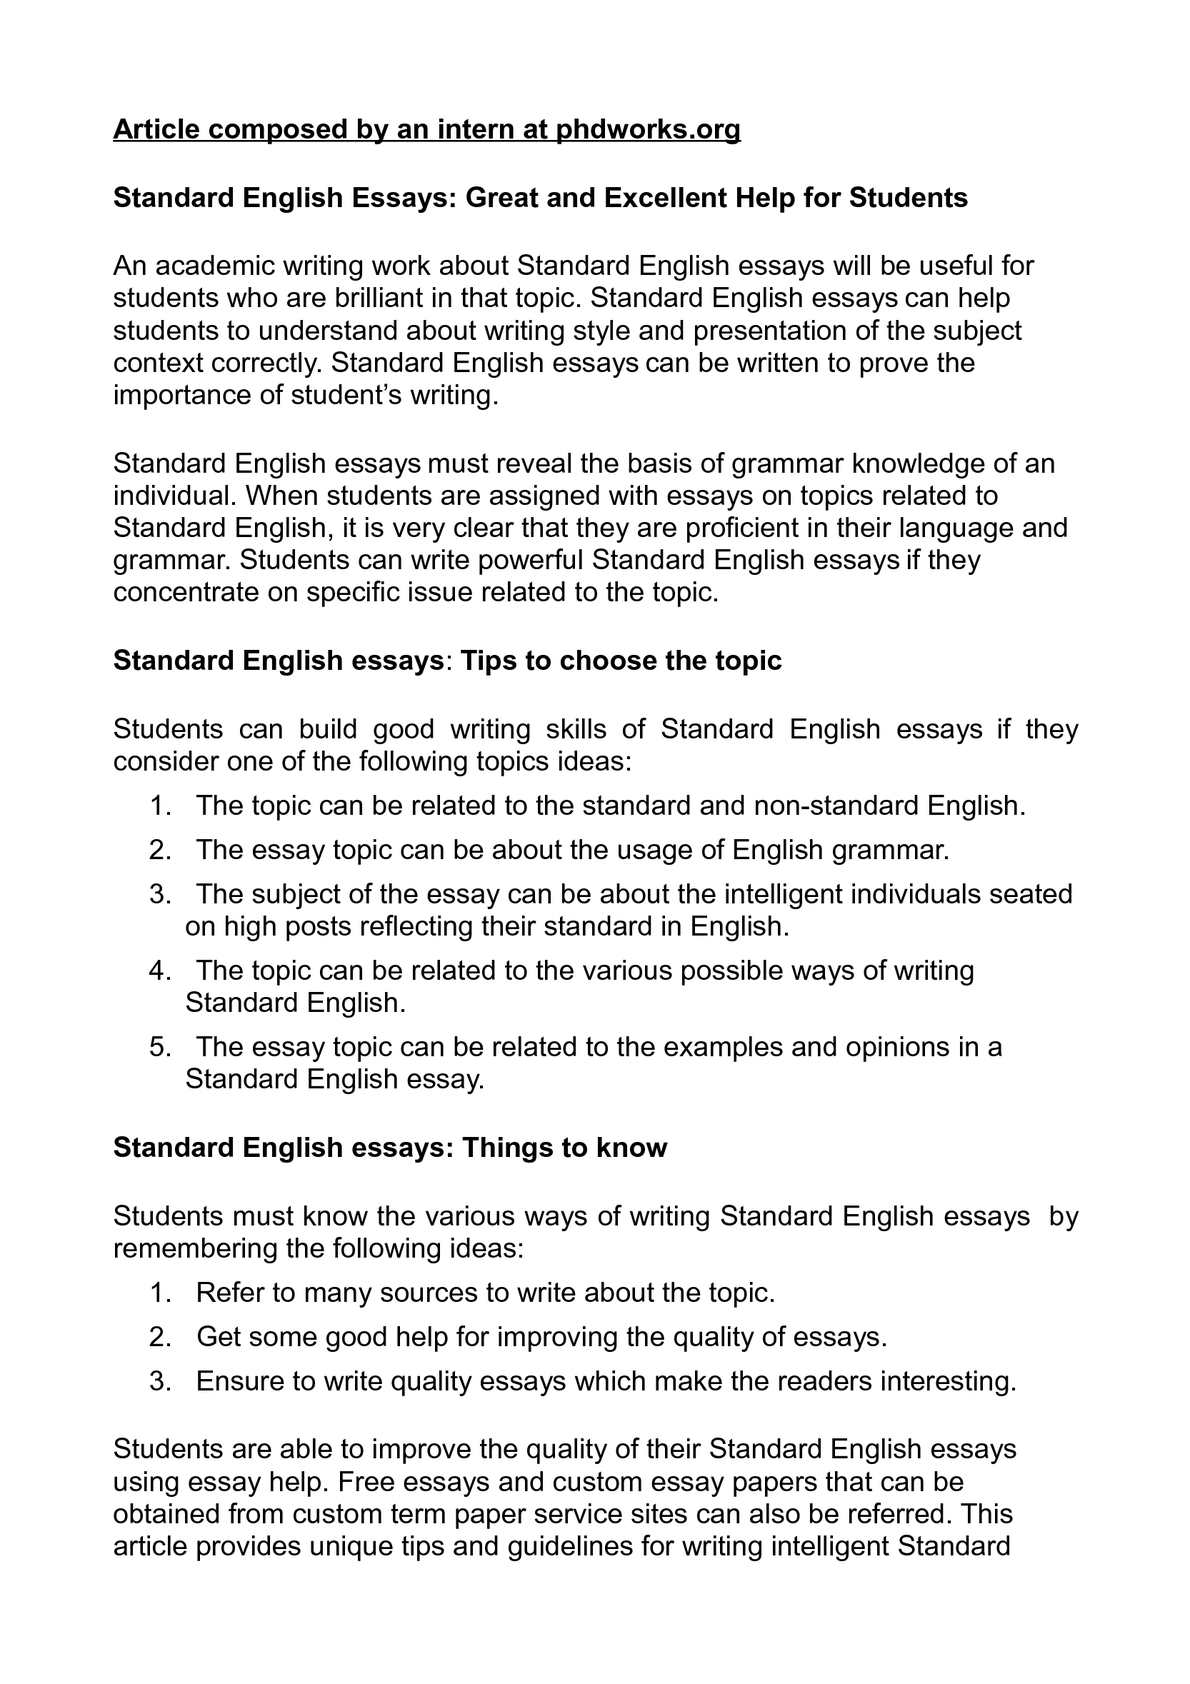 Essay With Thesis Statement Example  How To Write An Essay Proposal Example also Thesis For A Persuasive Essay Calamo   Standard English Essays Great And Excellent Help  Examples Thesis Statements Essays